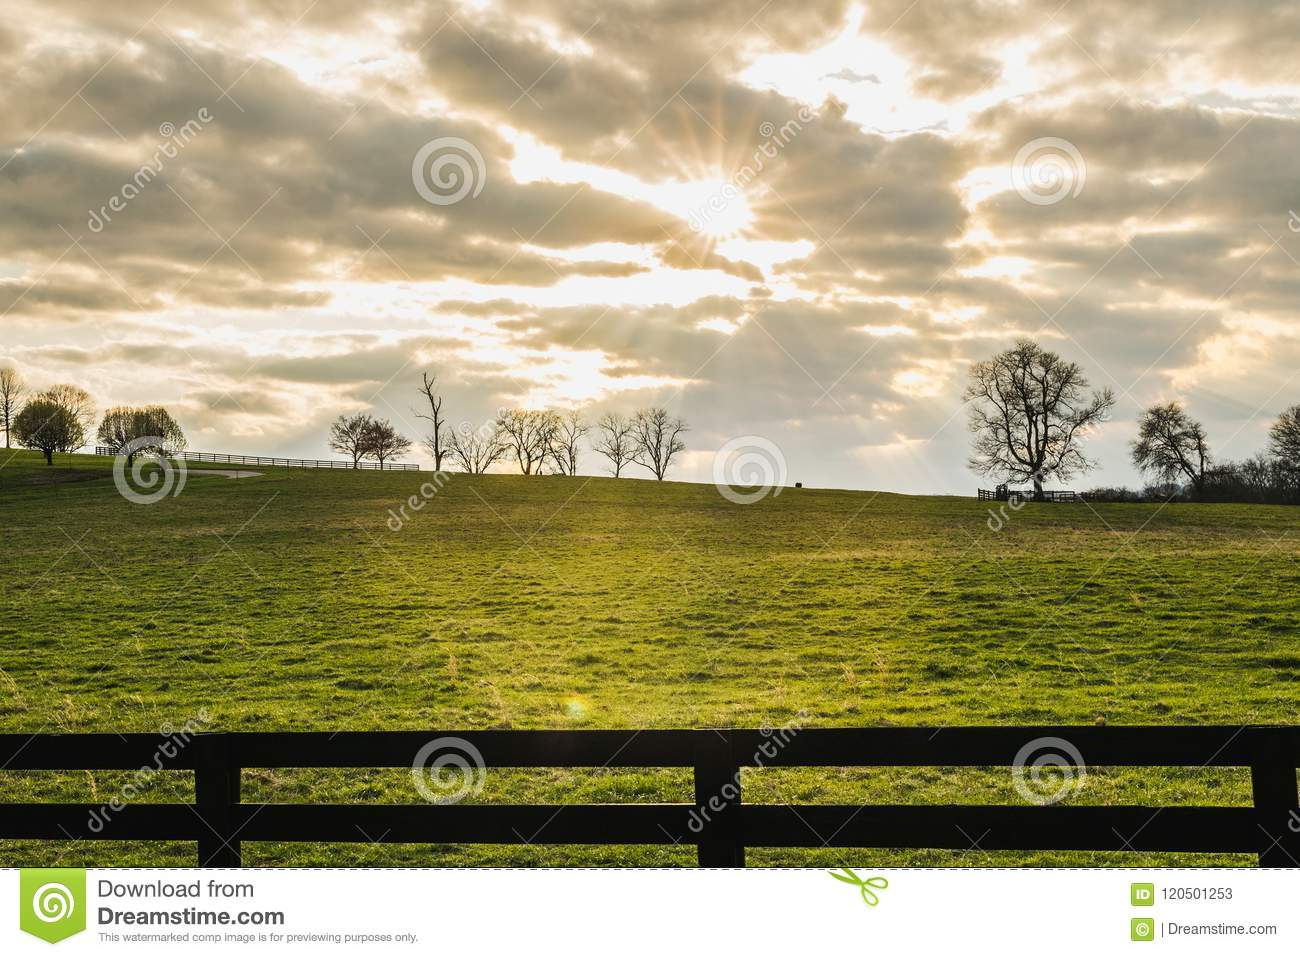 Sun Shining Through Clouds over a Green Field in late Afternoon